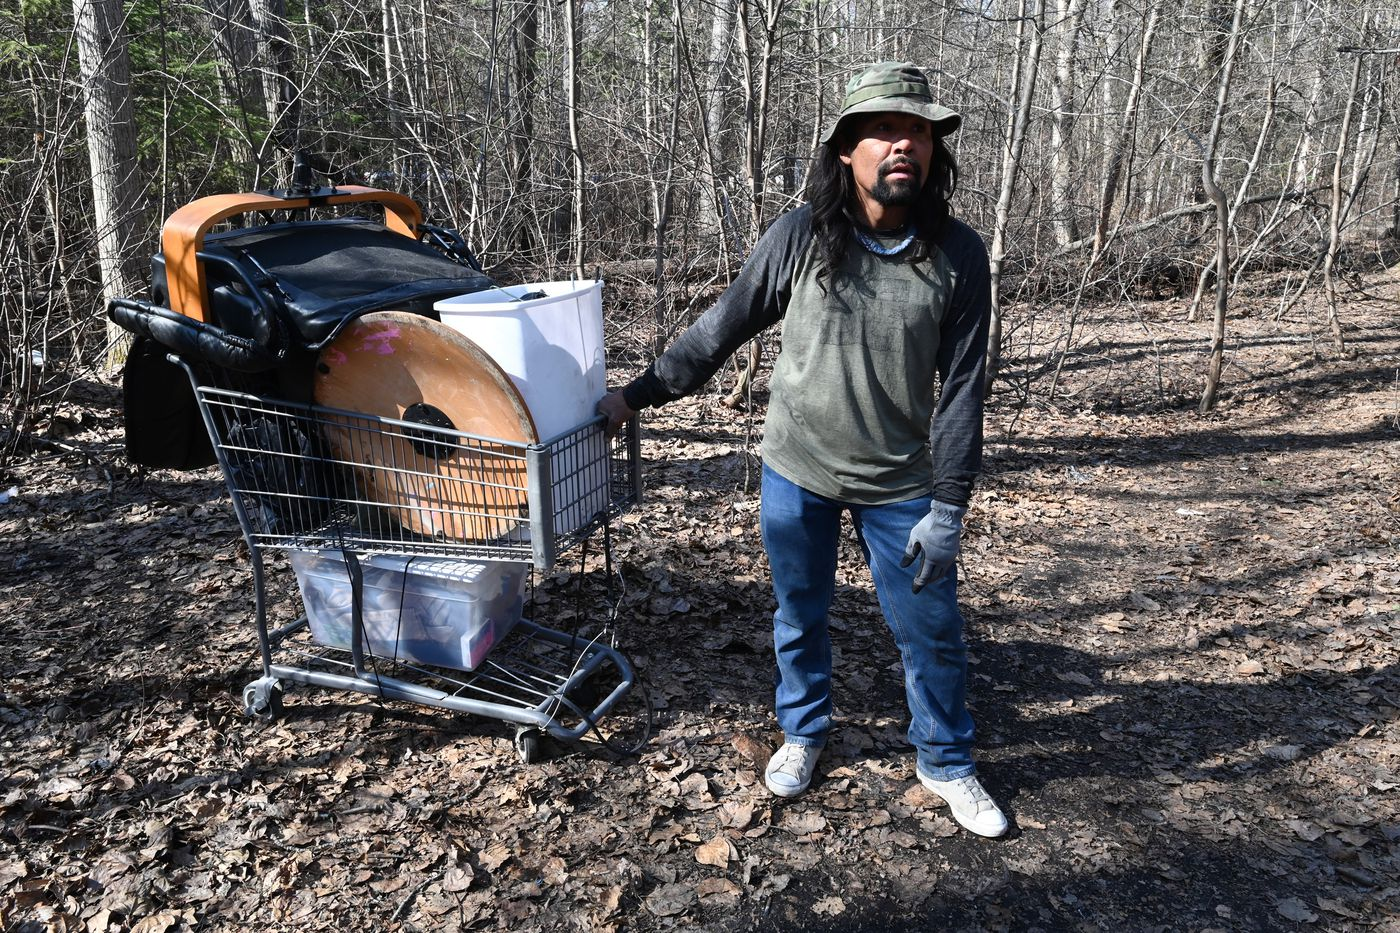 Gil Jacko hauls some possessions to a homeless campsite along Chester Creek on Thursday, April 30, 2020, during the COVID-19 pandemic. (Bill Roth / ADN)